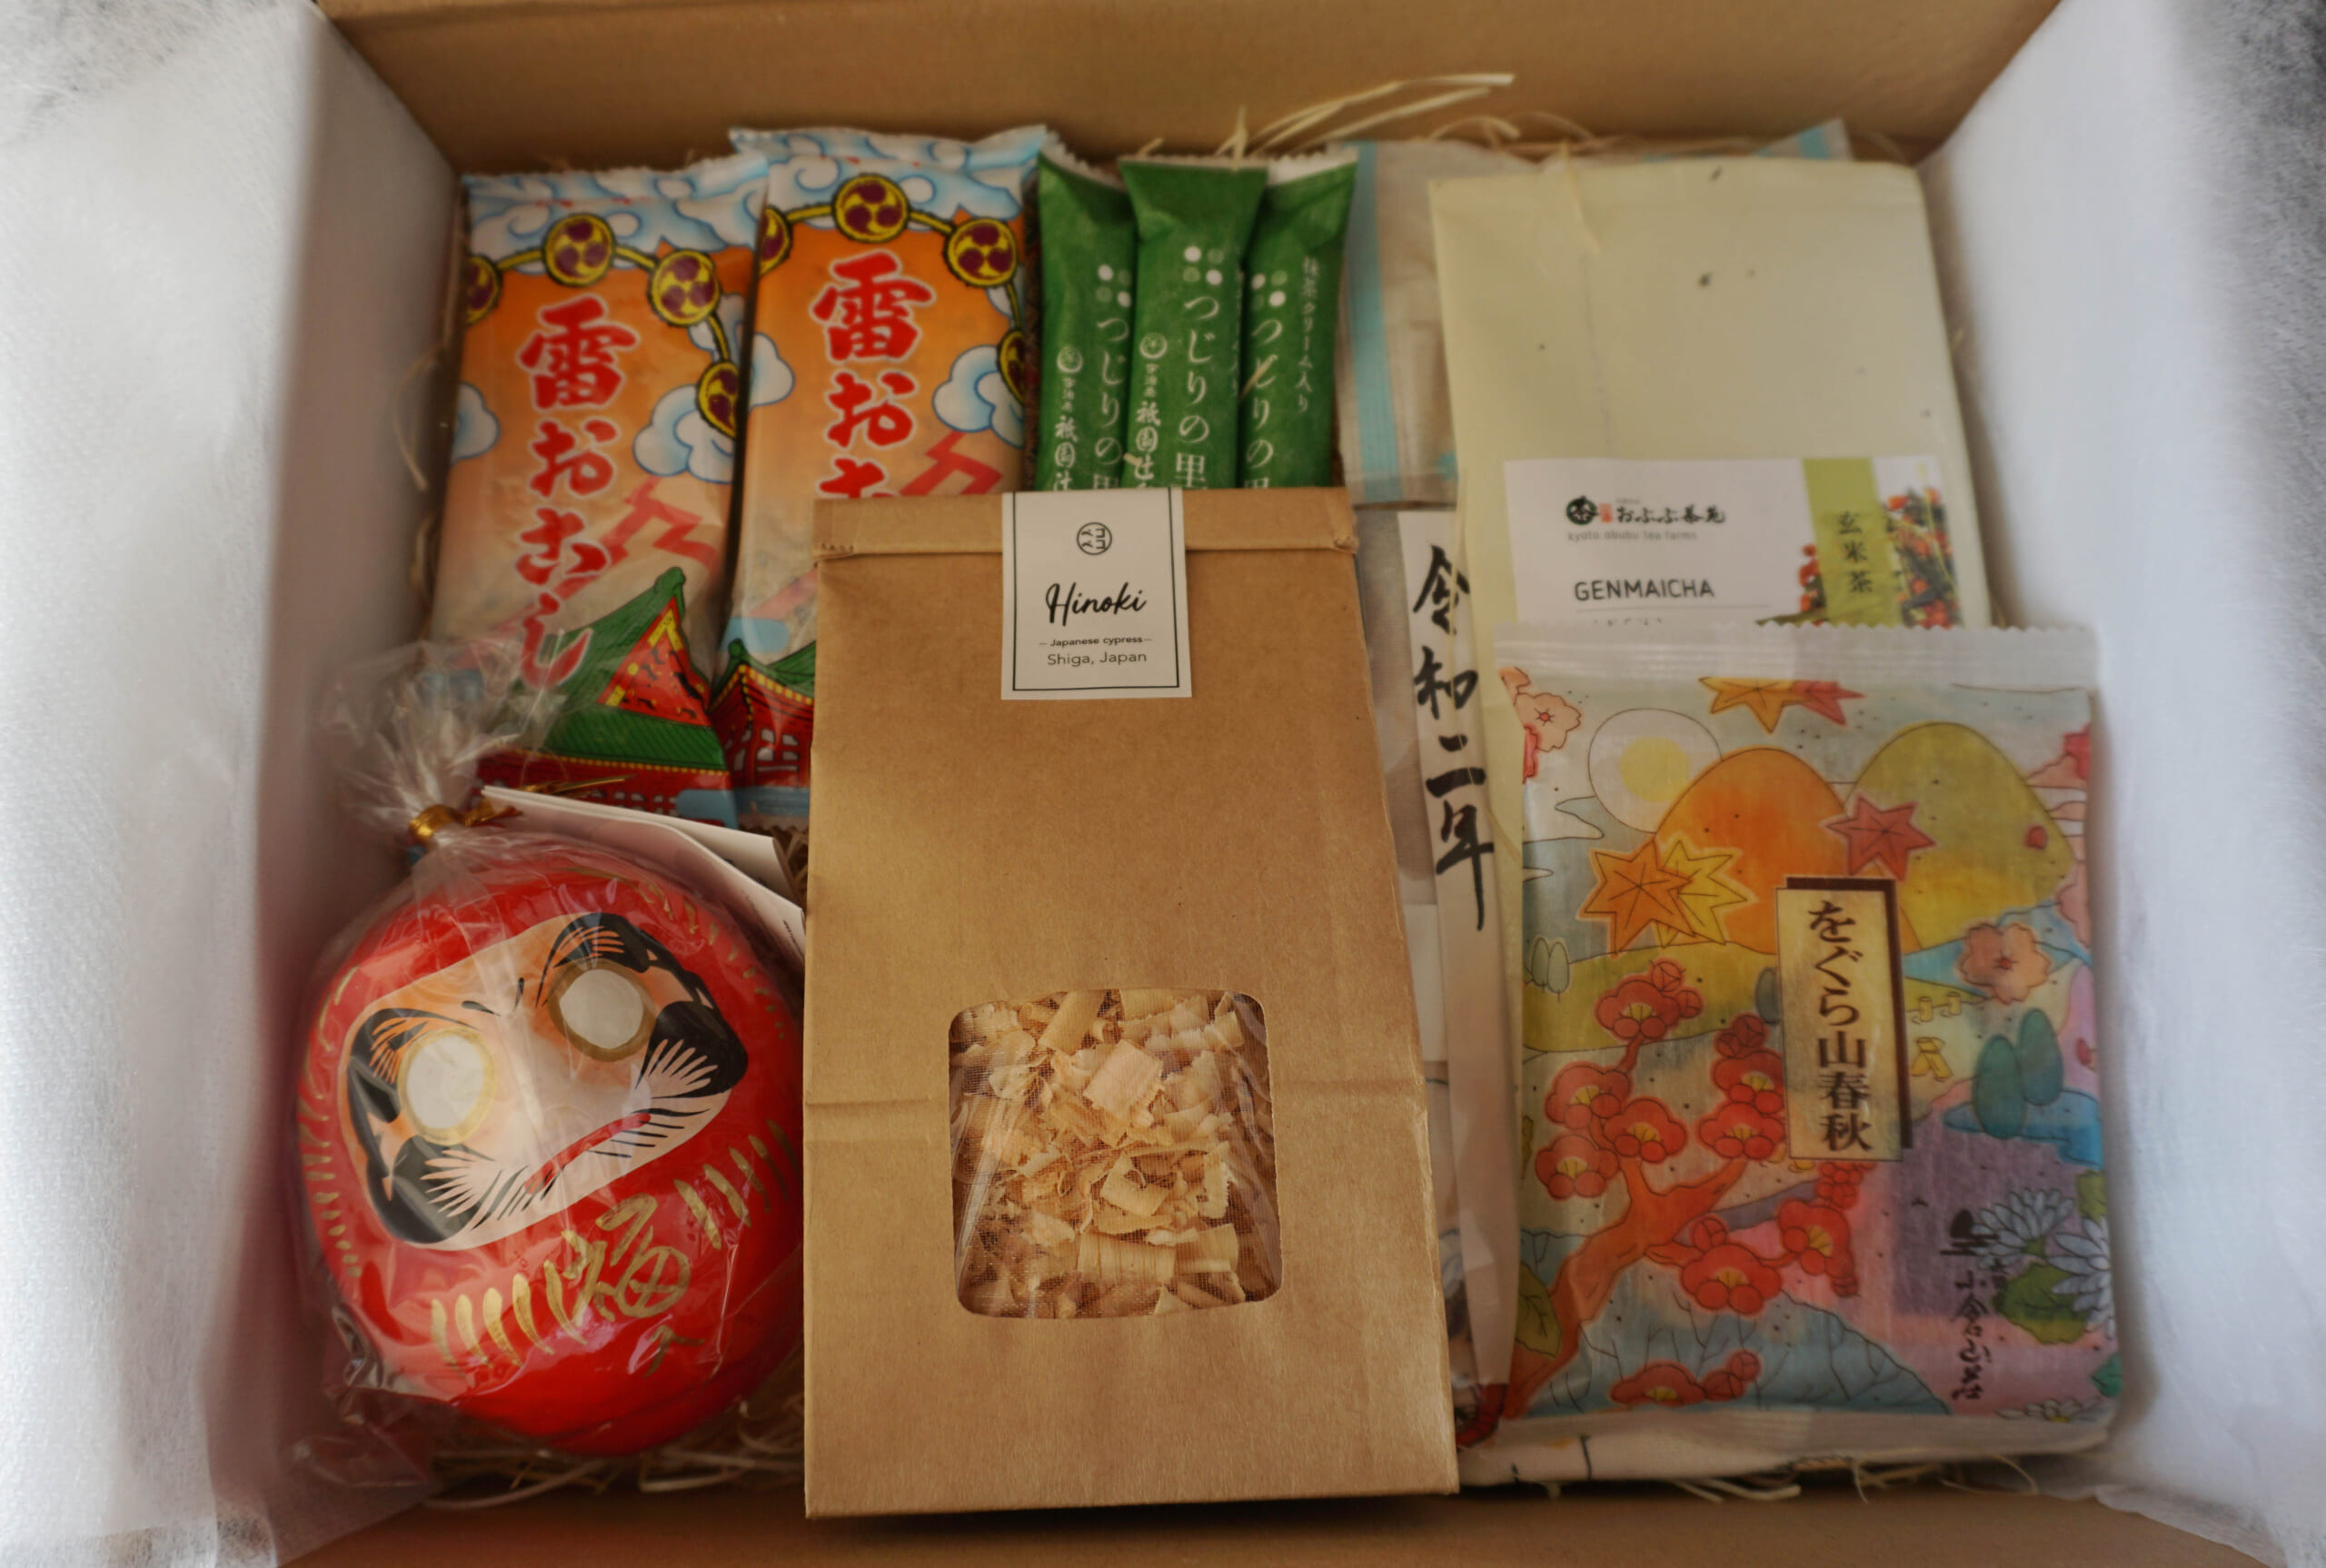 Peko Peko Box: How to Get Unique Japanese Products to Your Home